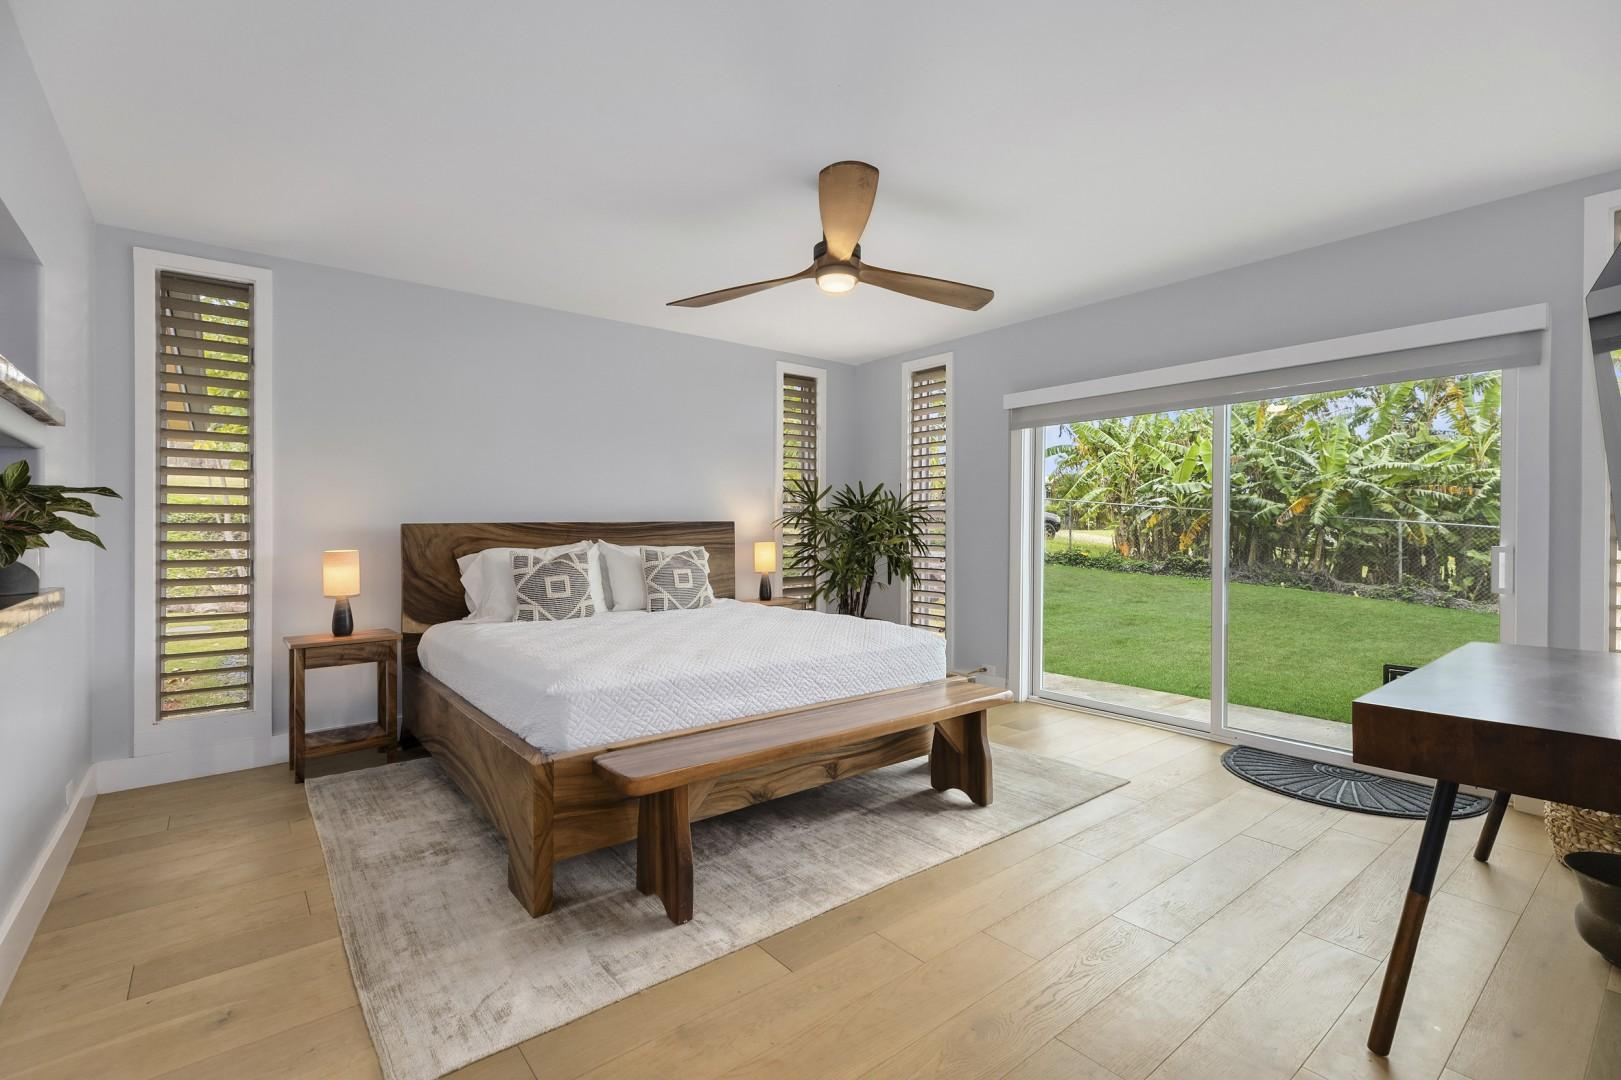 Master bedroom with king sized bed, study desk, and smart TV